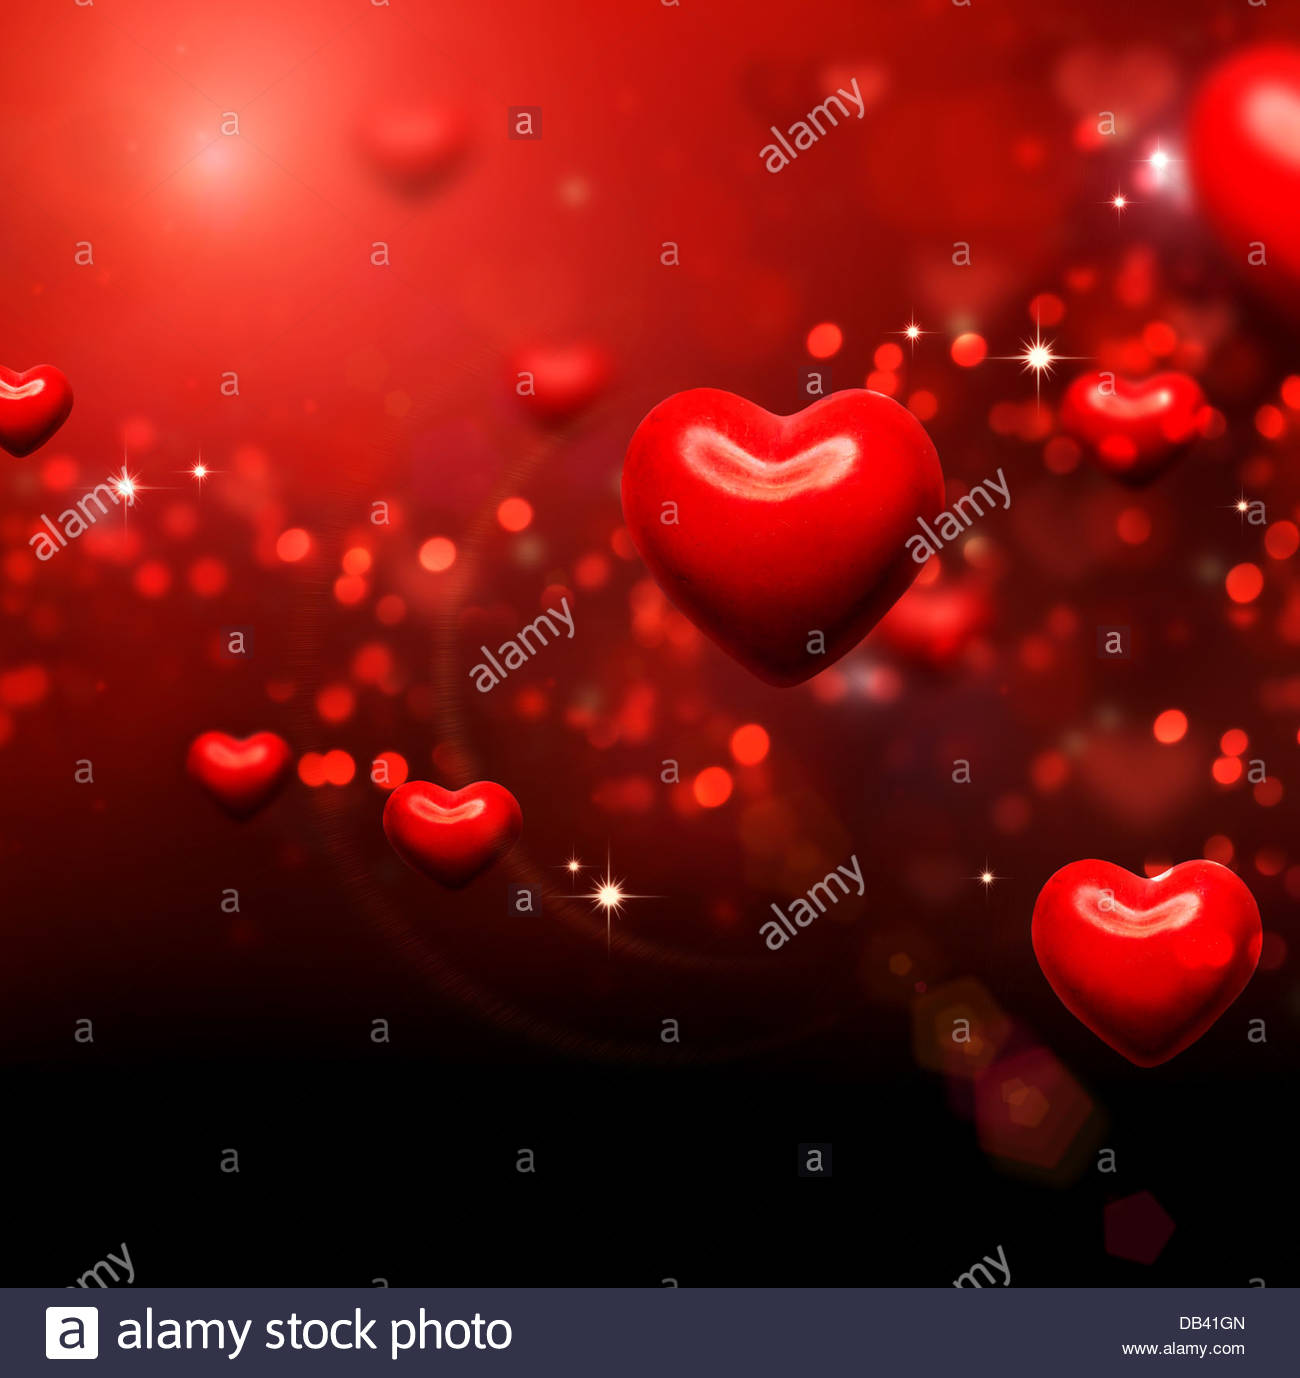 Valentine Hearts Background Valentines Red Abstract Wallpaper 1300x1378